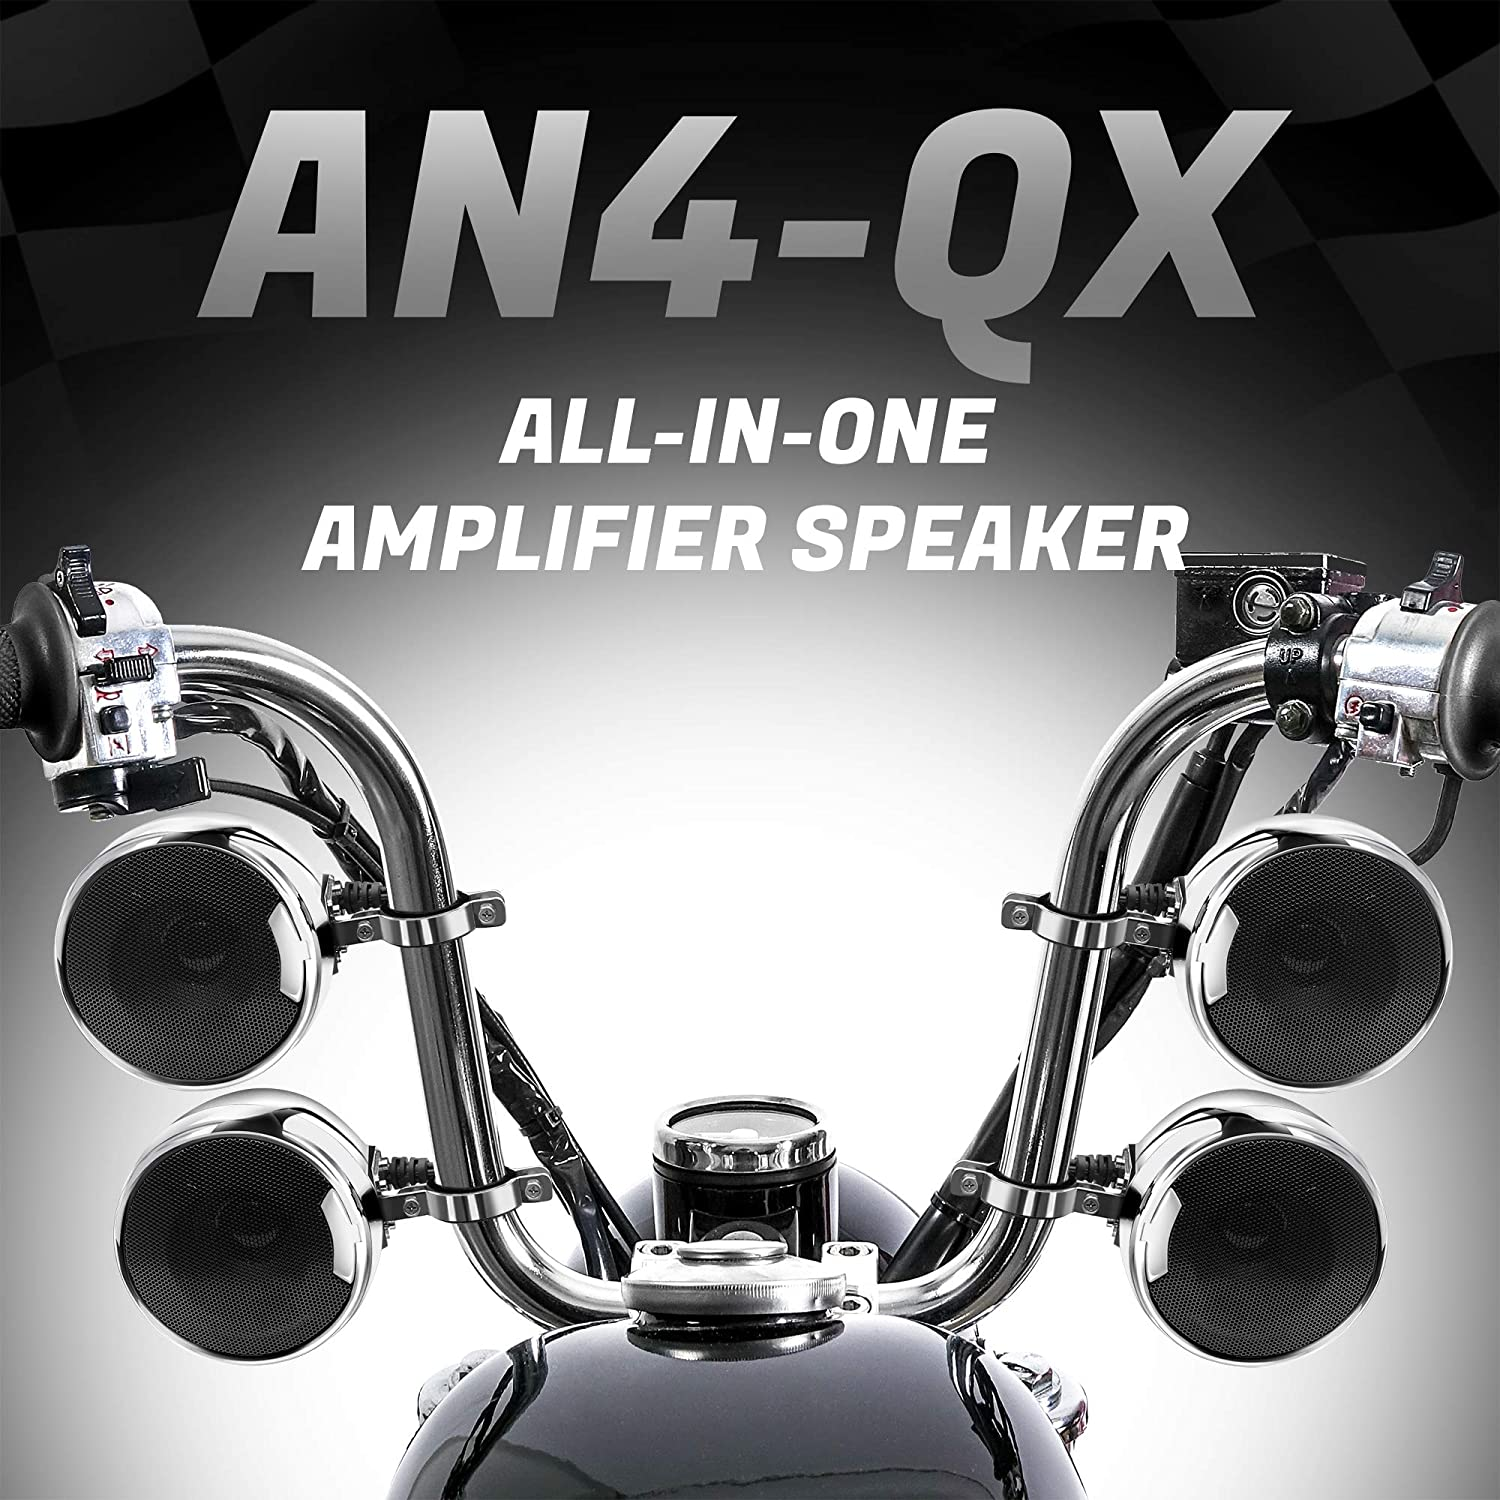 Automotive Motorcycle & ATV GoHawk AN4-QX 1200W 4 Channel All-in-One Amplifier 4.5 Full Range Waterproof Bluetooth Motorcycle Stereo Speakers Audio Amp System w/AUX for 1-1.5 Handlebar Harley Cruiser Can-Am ATV UTV RZR Polaris